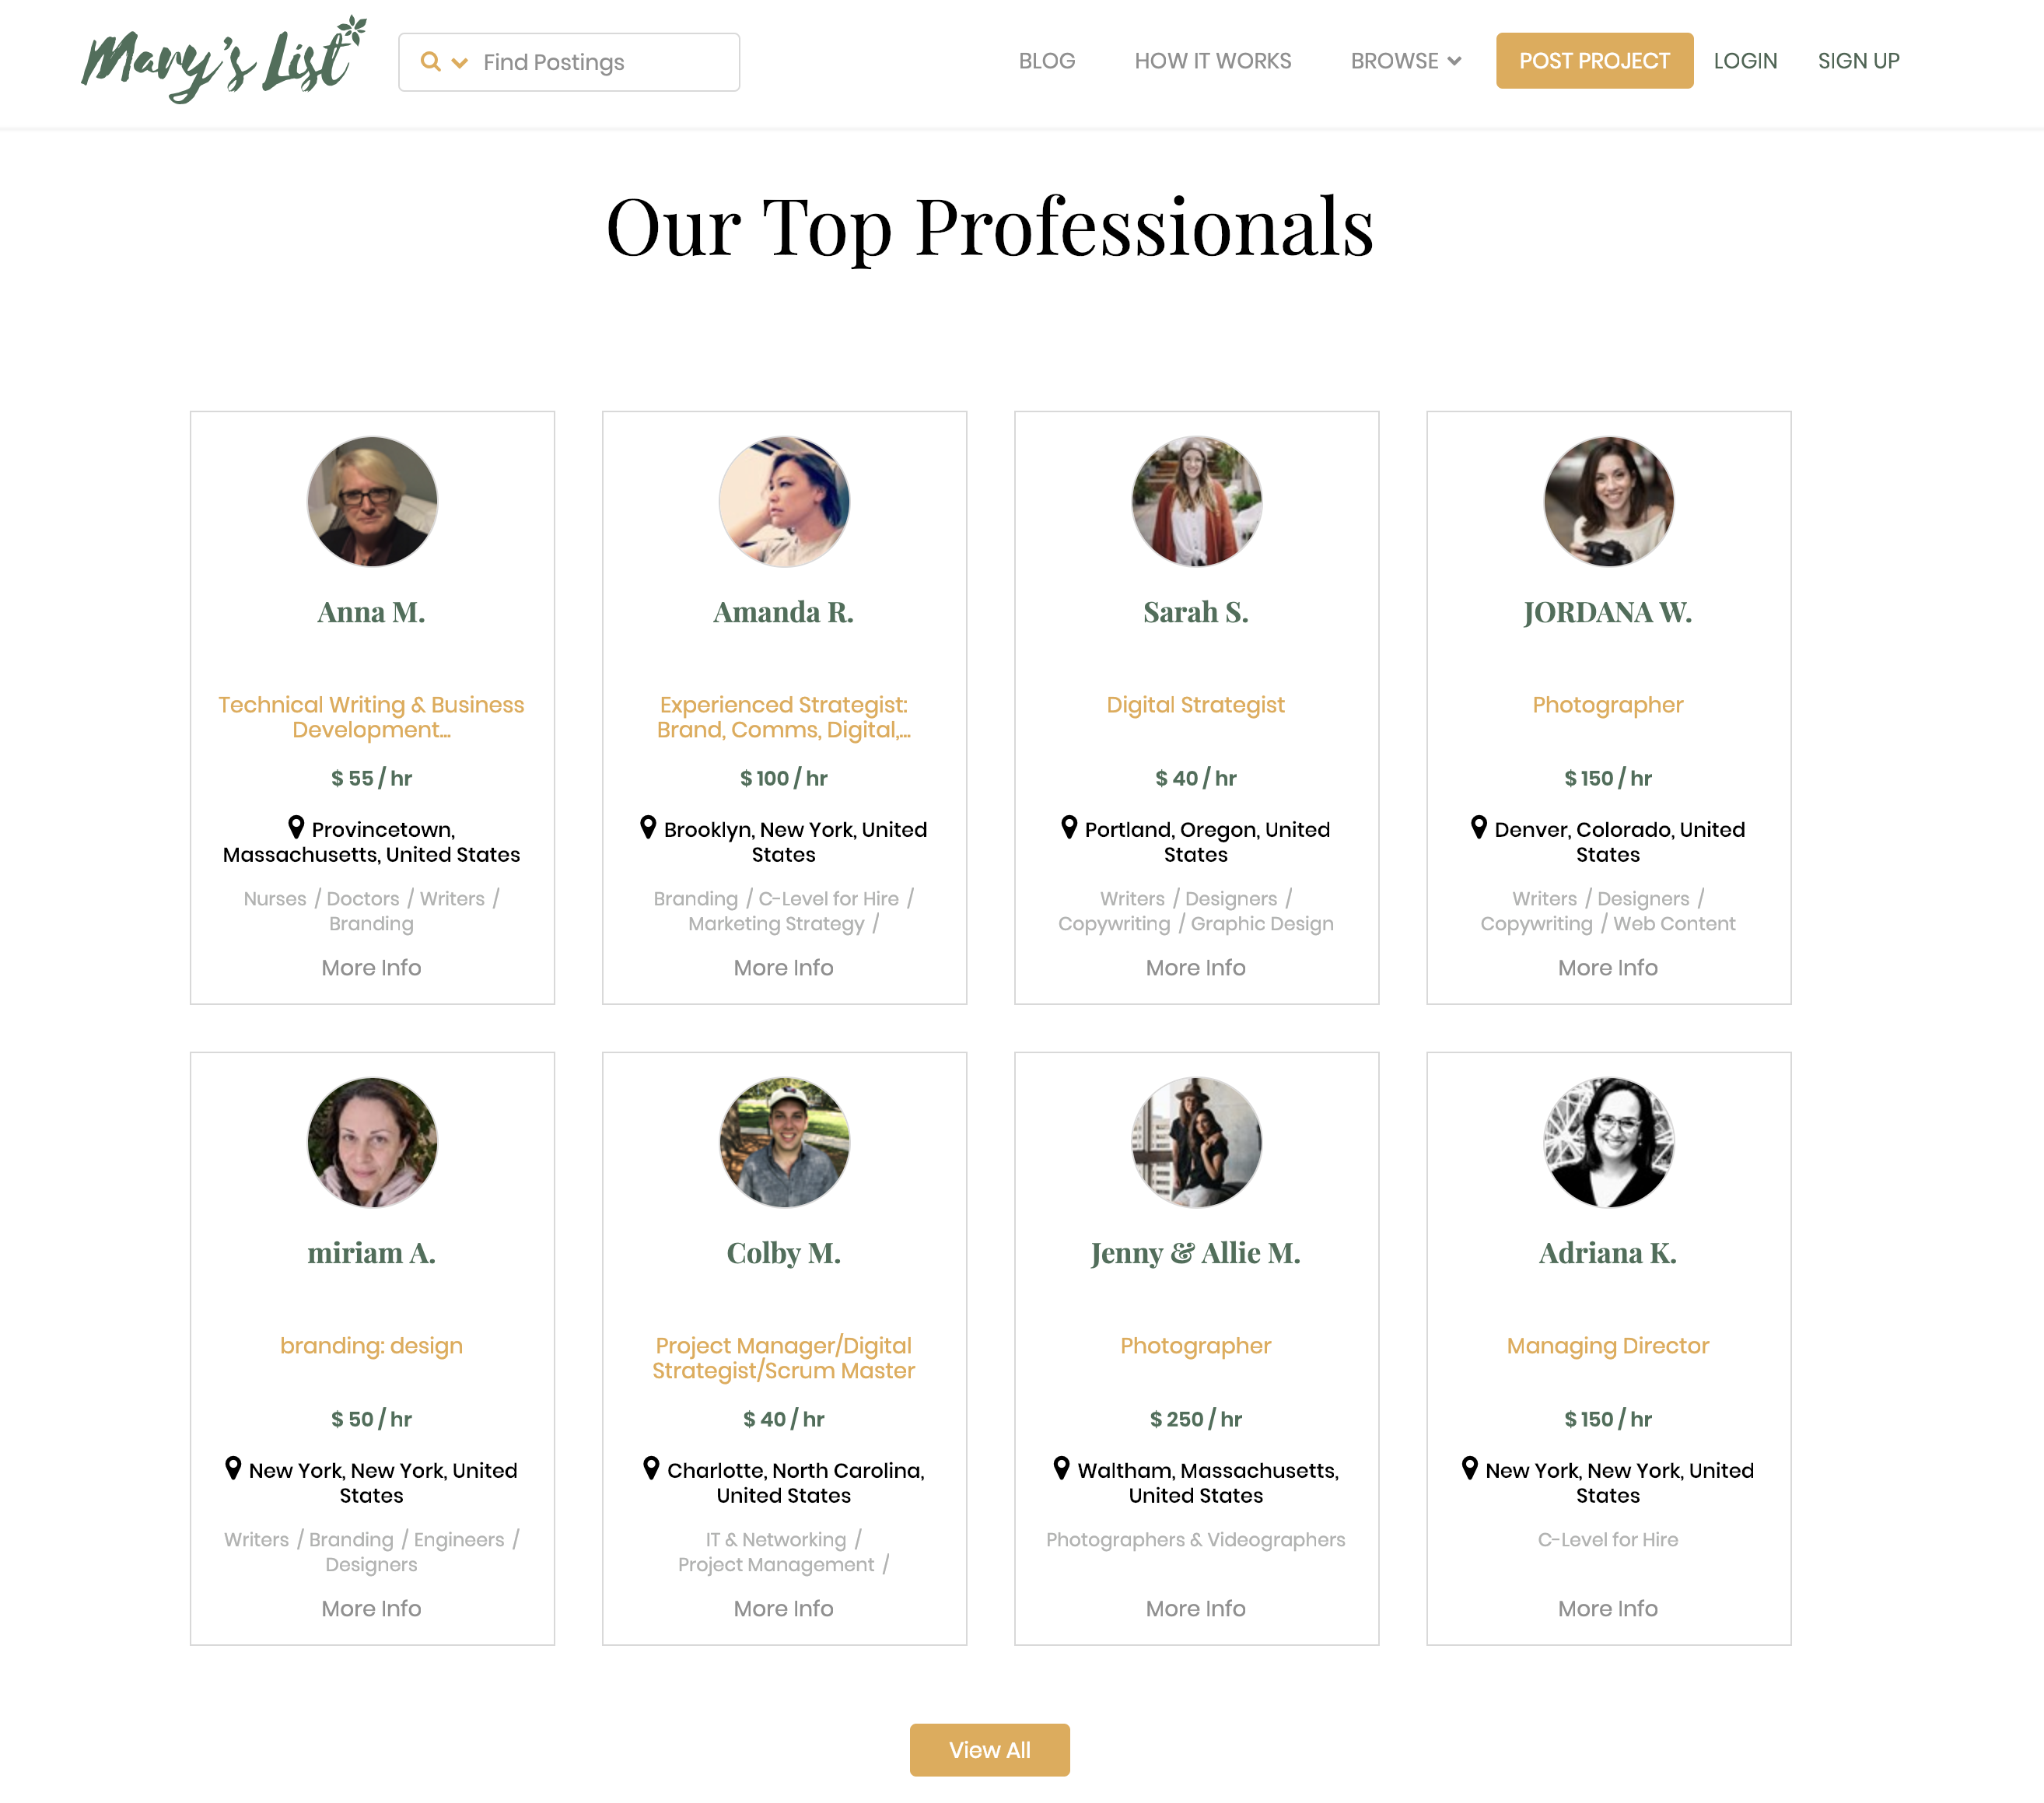 Mary's List Top Professionals